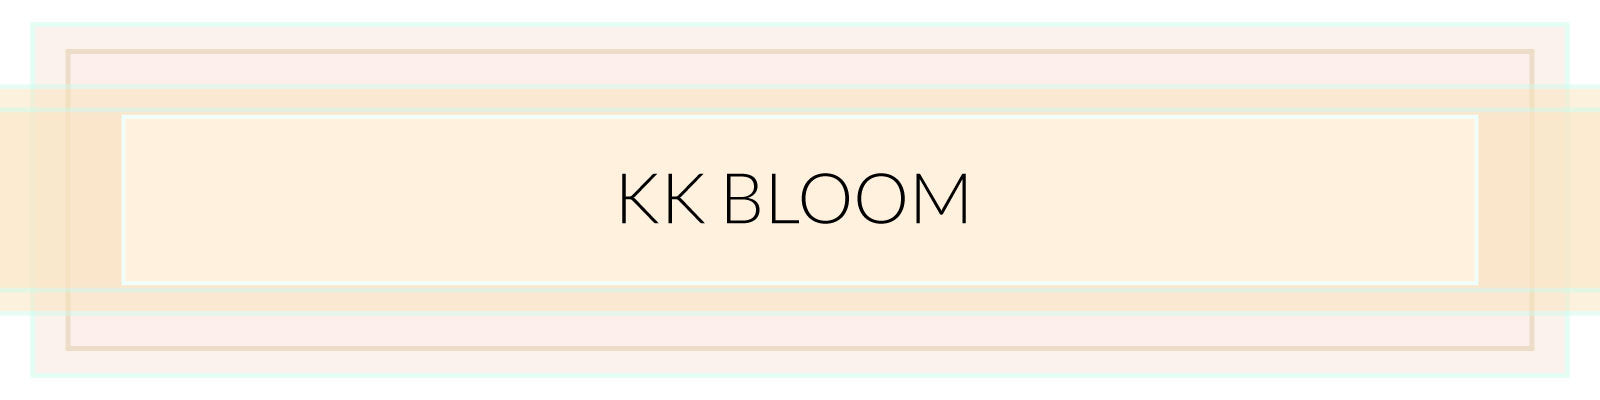 KK Bloom Boutique